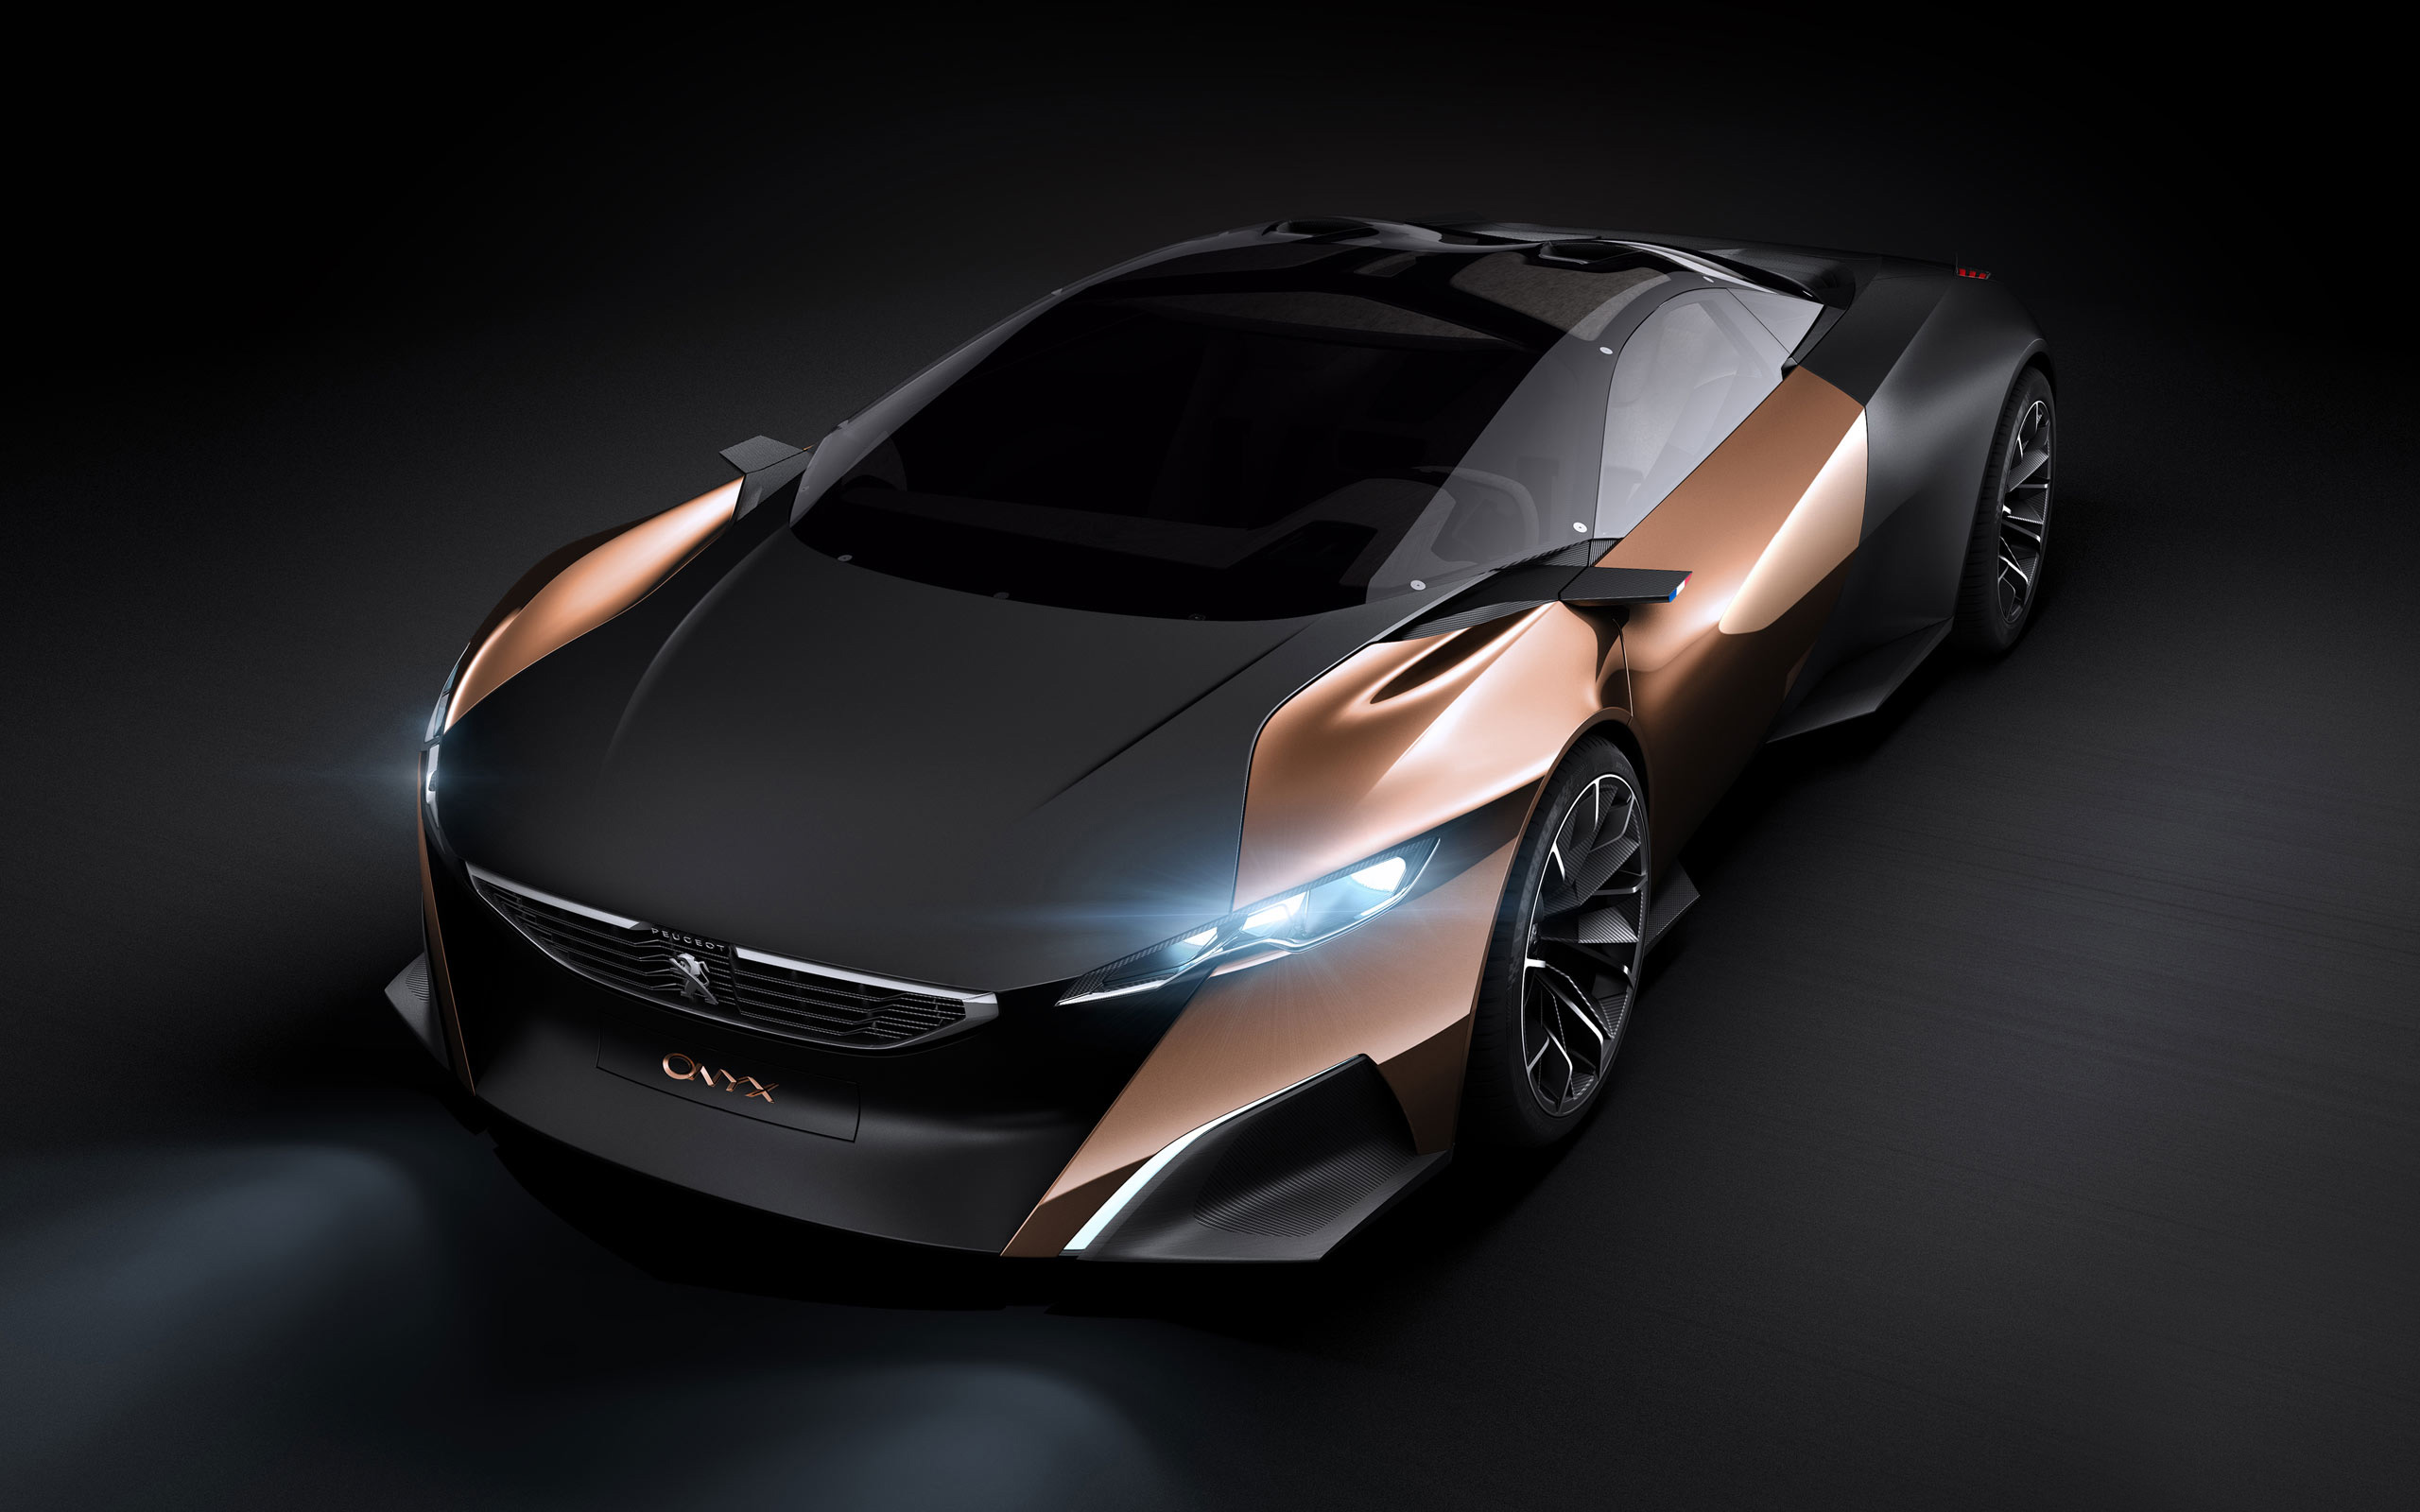 concept car hd wallpaper - photo #17